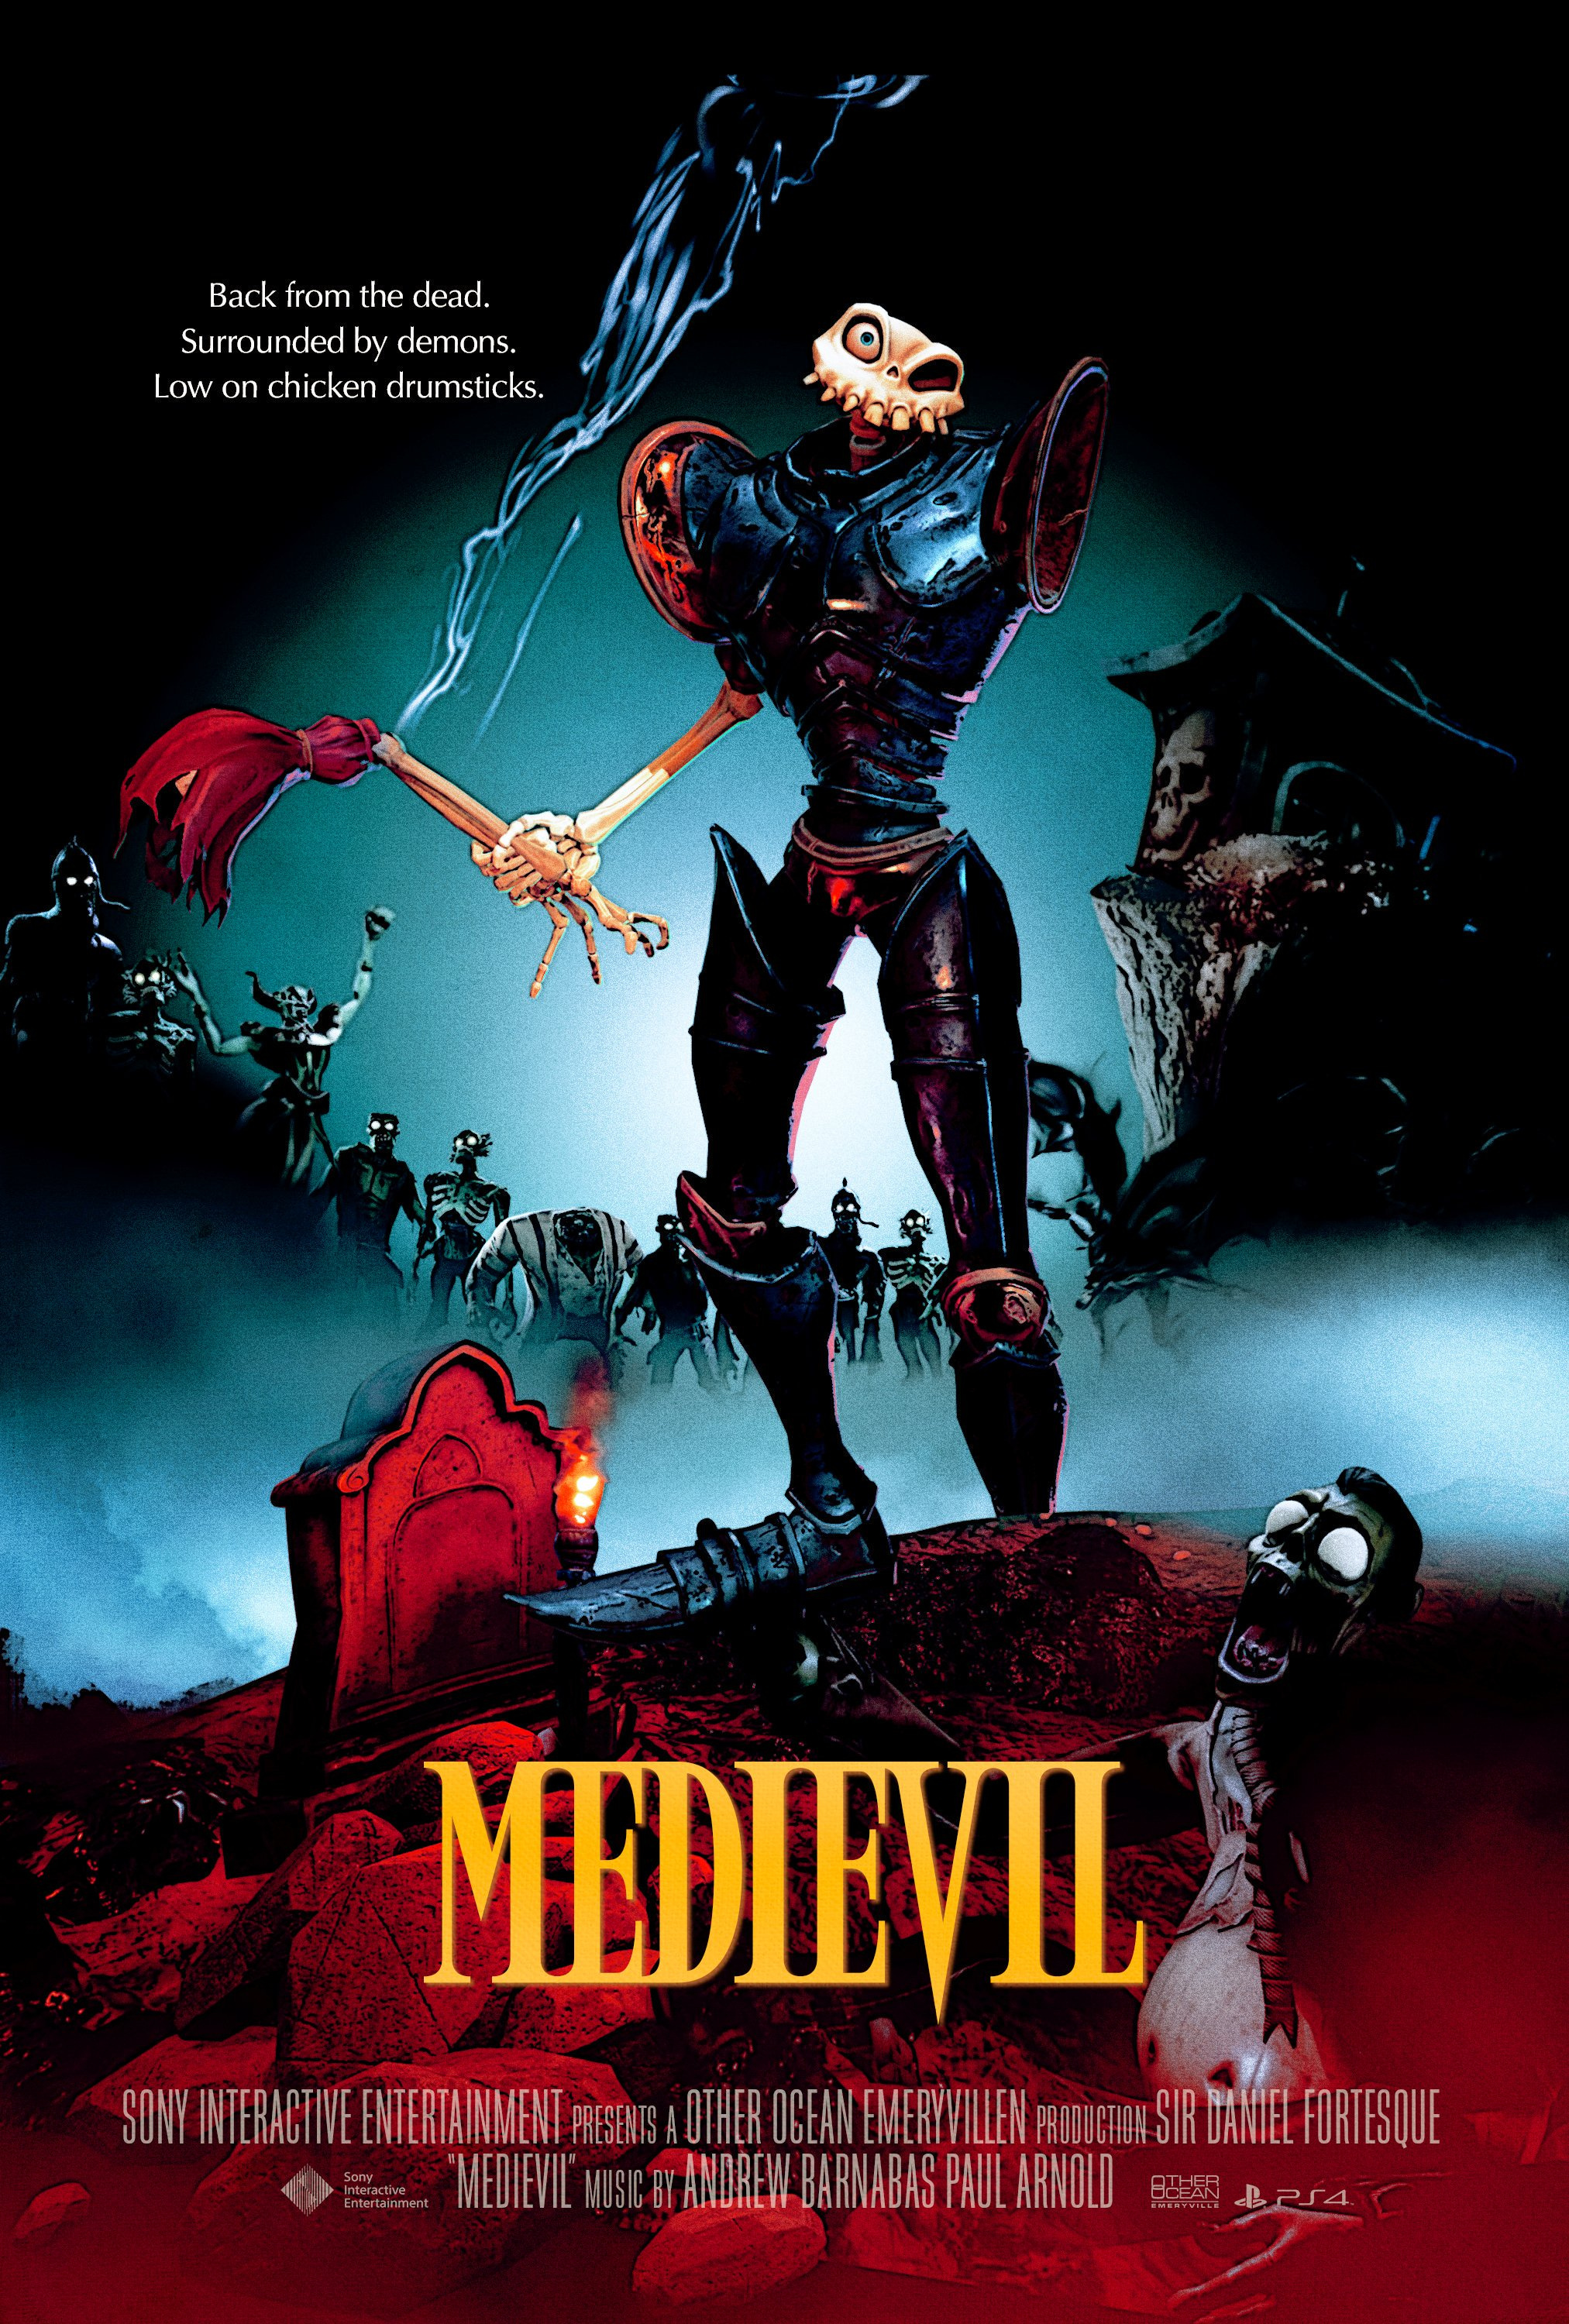 medievil movie poster posters horror army darkness classic spoof flicks ps4 playstation brilliantly random square dan push these